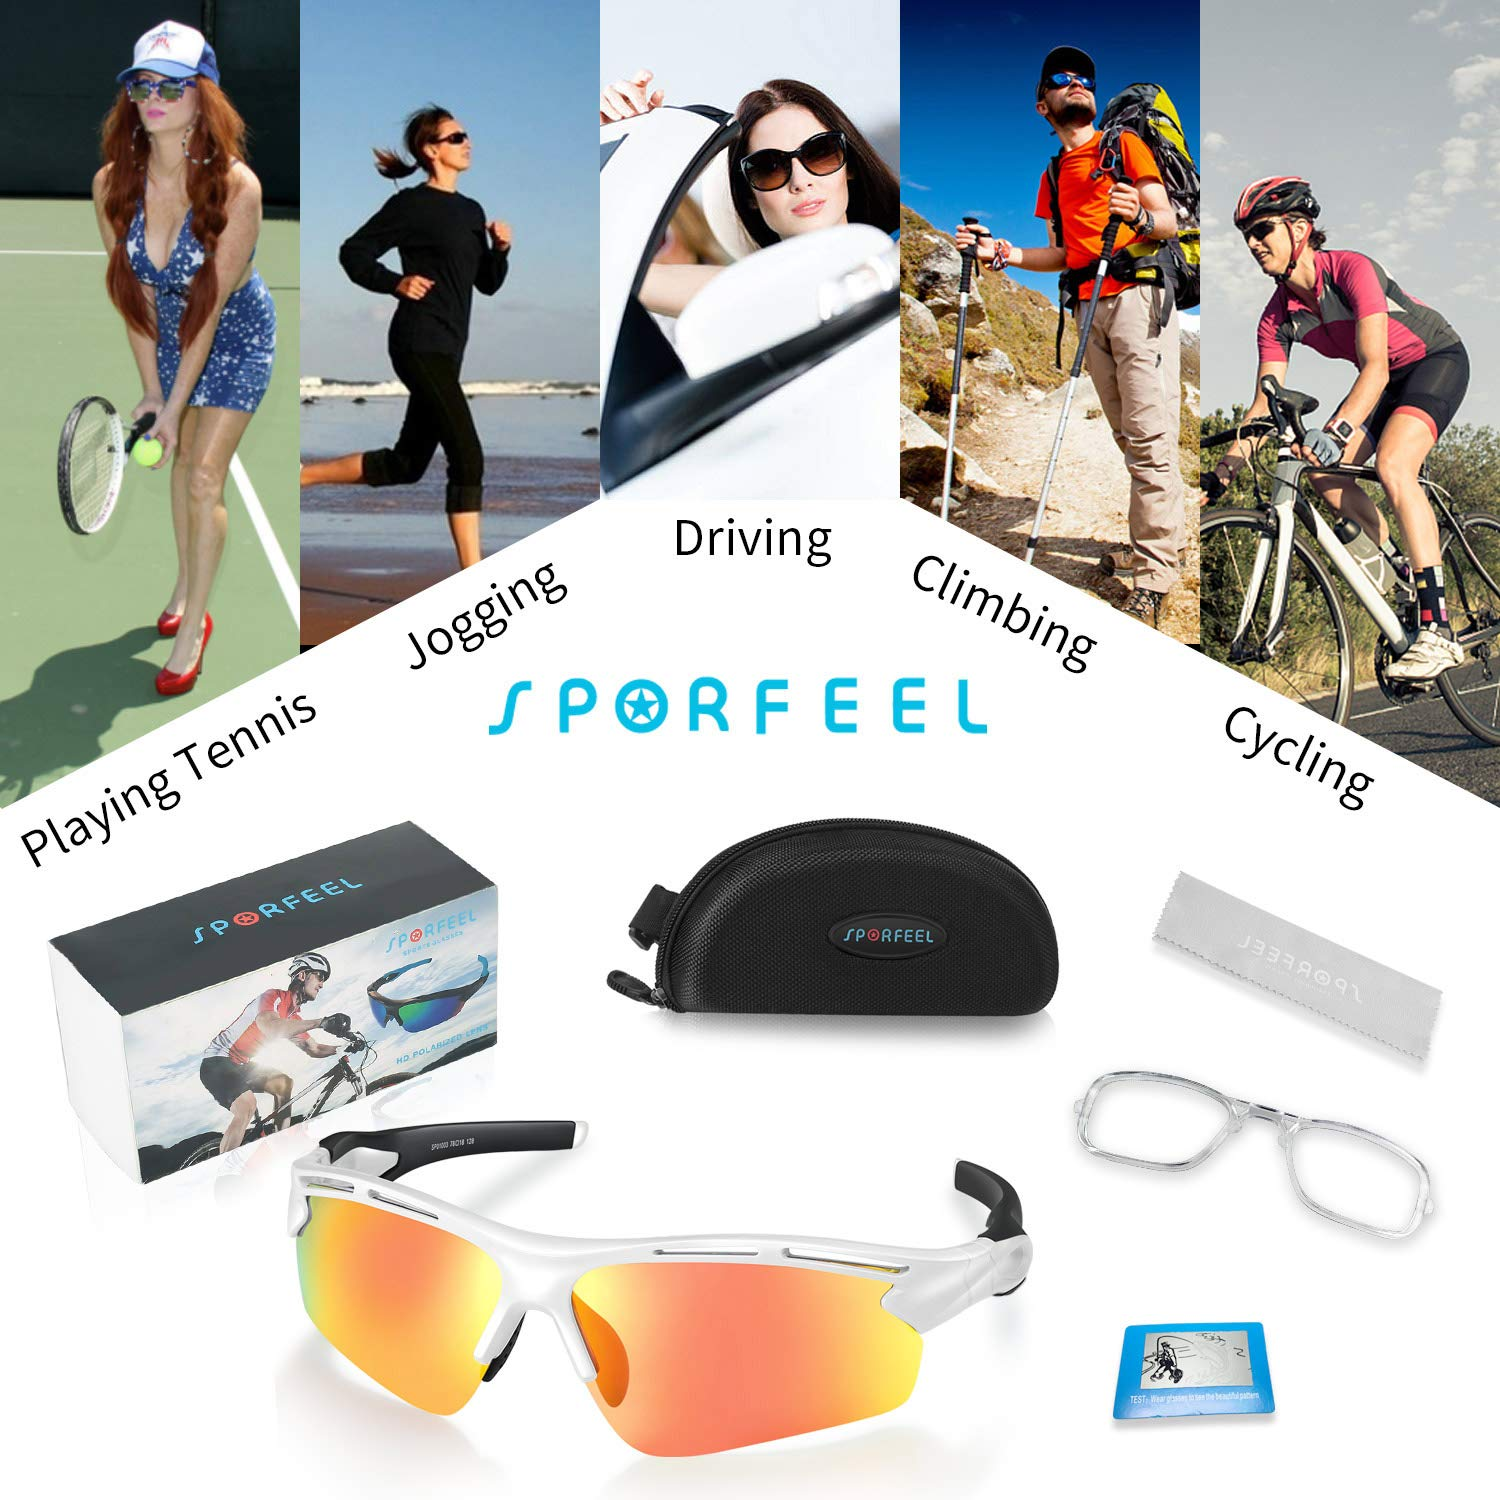 SPORFEEL Polarized Sunglasses Sports Glasses UV400 Cycling Eyewear Goggle TR90 Flexible Frame Mirrored Sunglasses Replaceable Lens for Men Women Teens Biking Cycling Fishing Boating Running